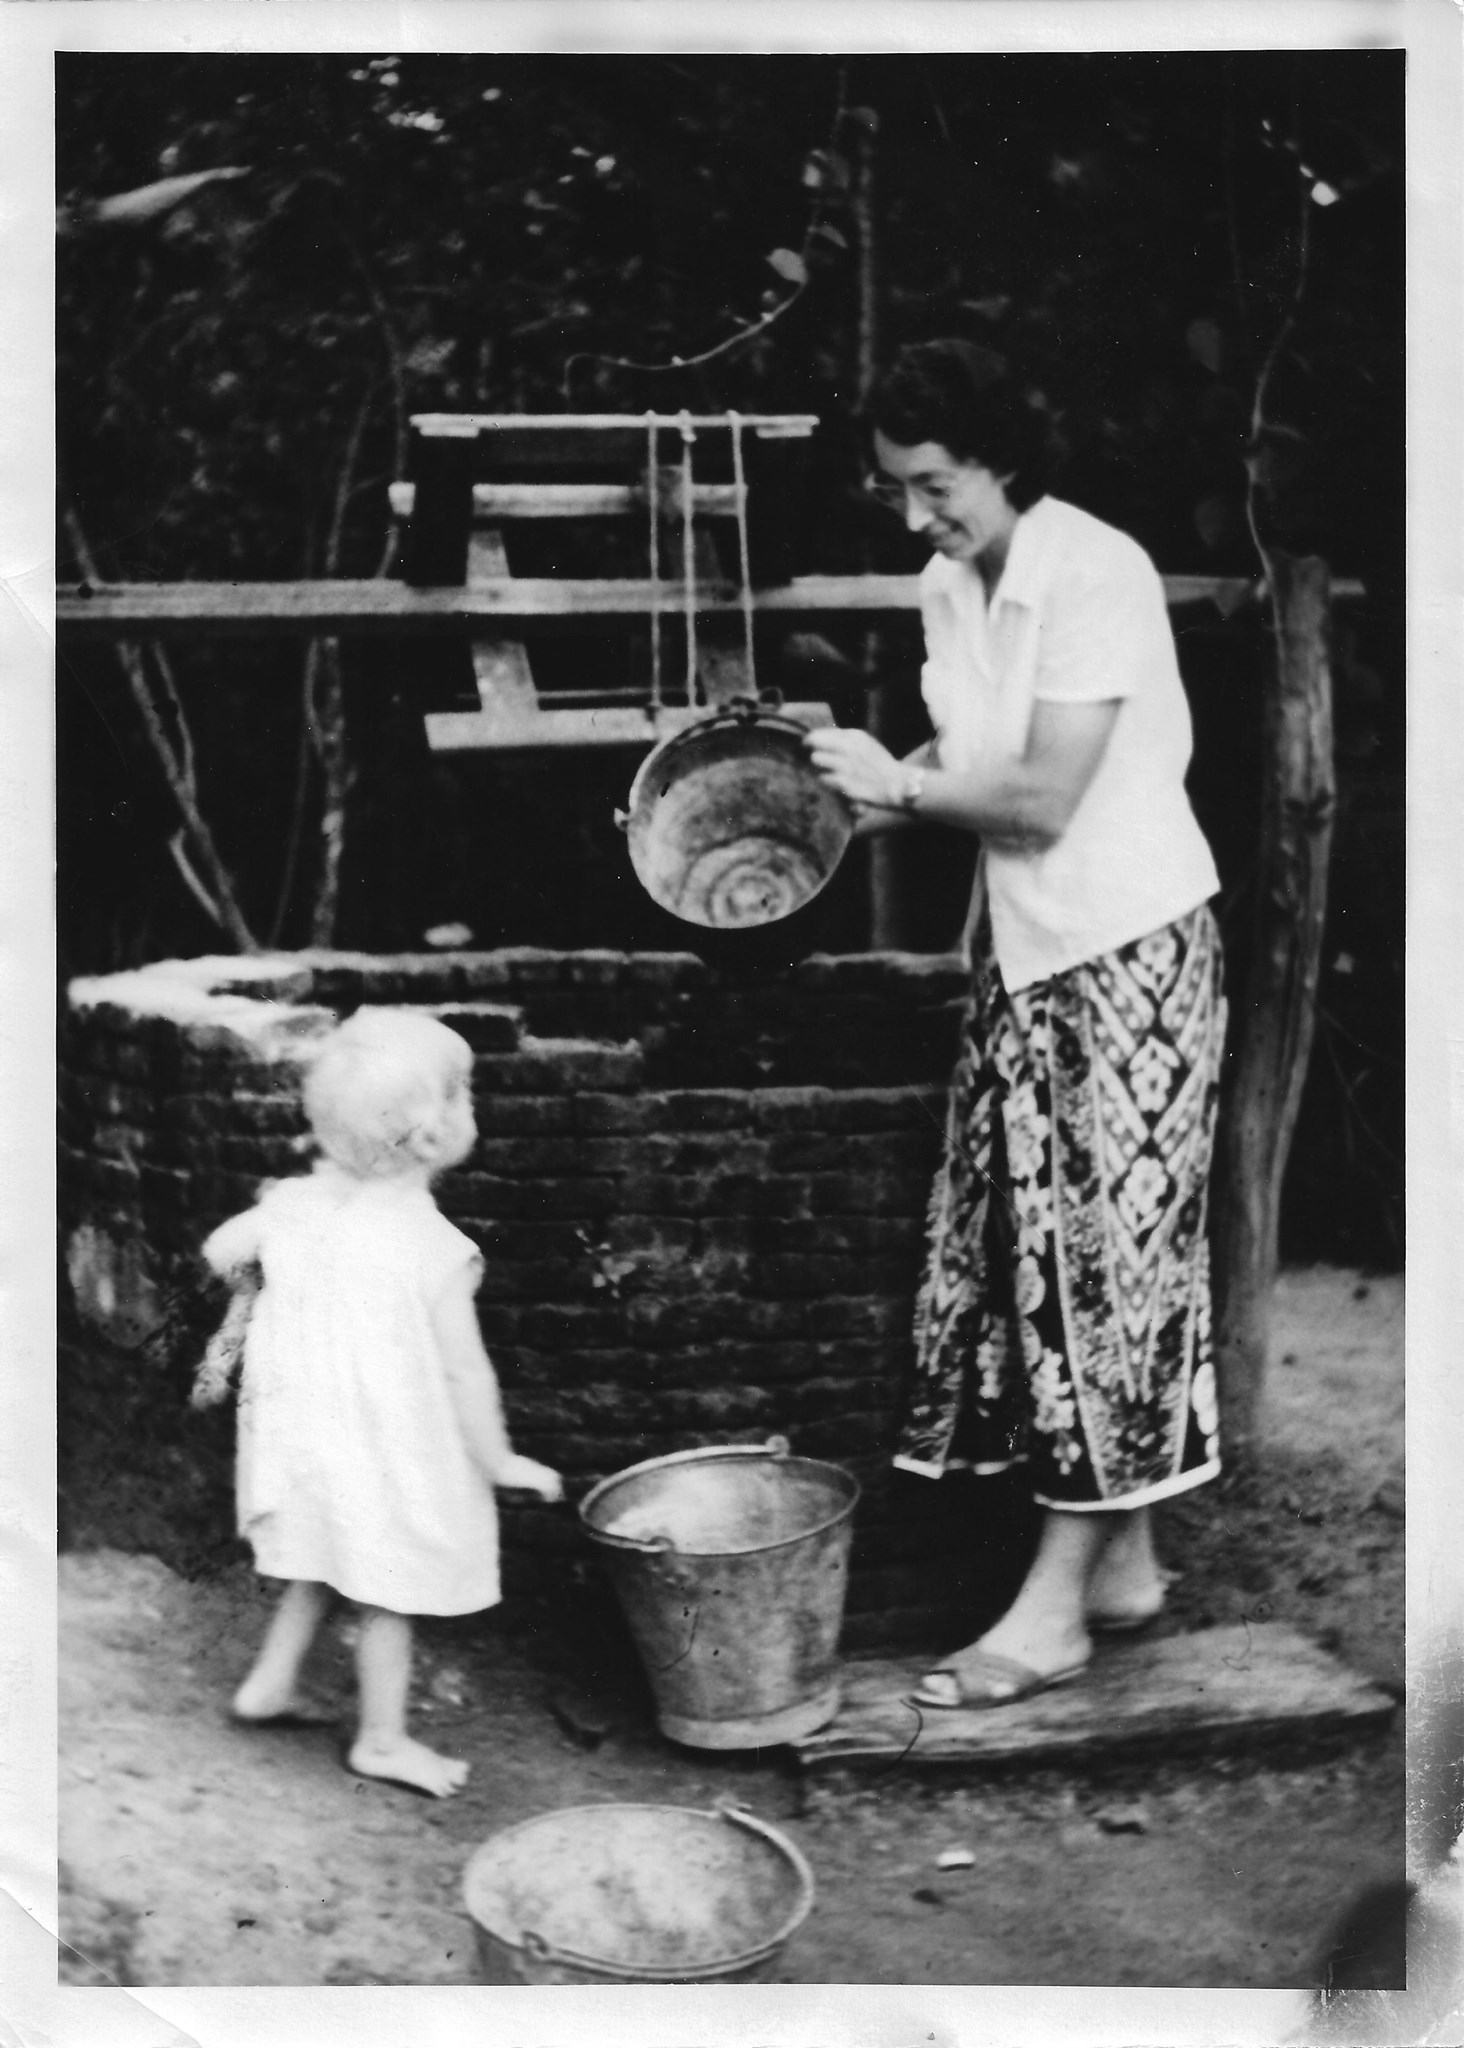 Dorothy in 50s with blonde child - anyone know who is with her?